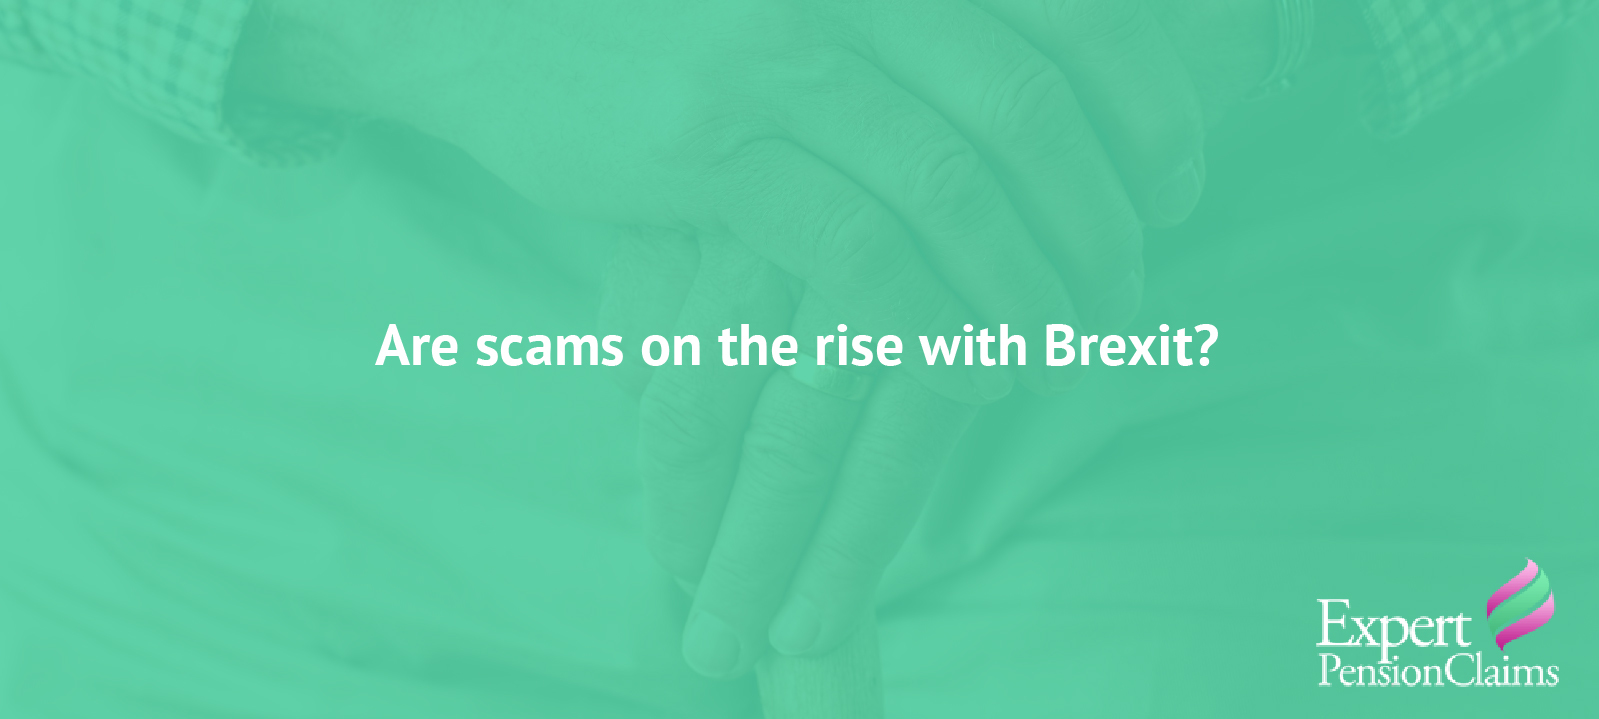 Are scams on the rise with Brexit?